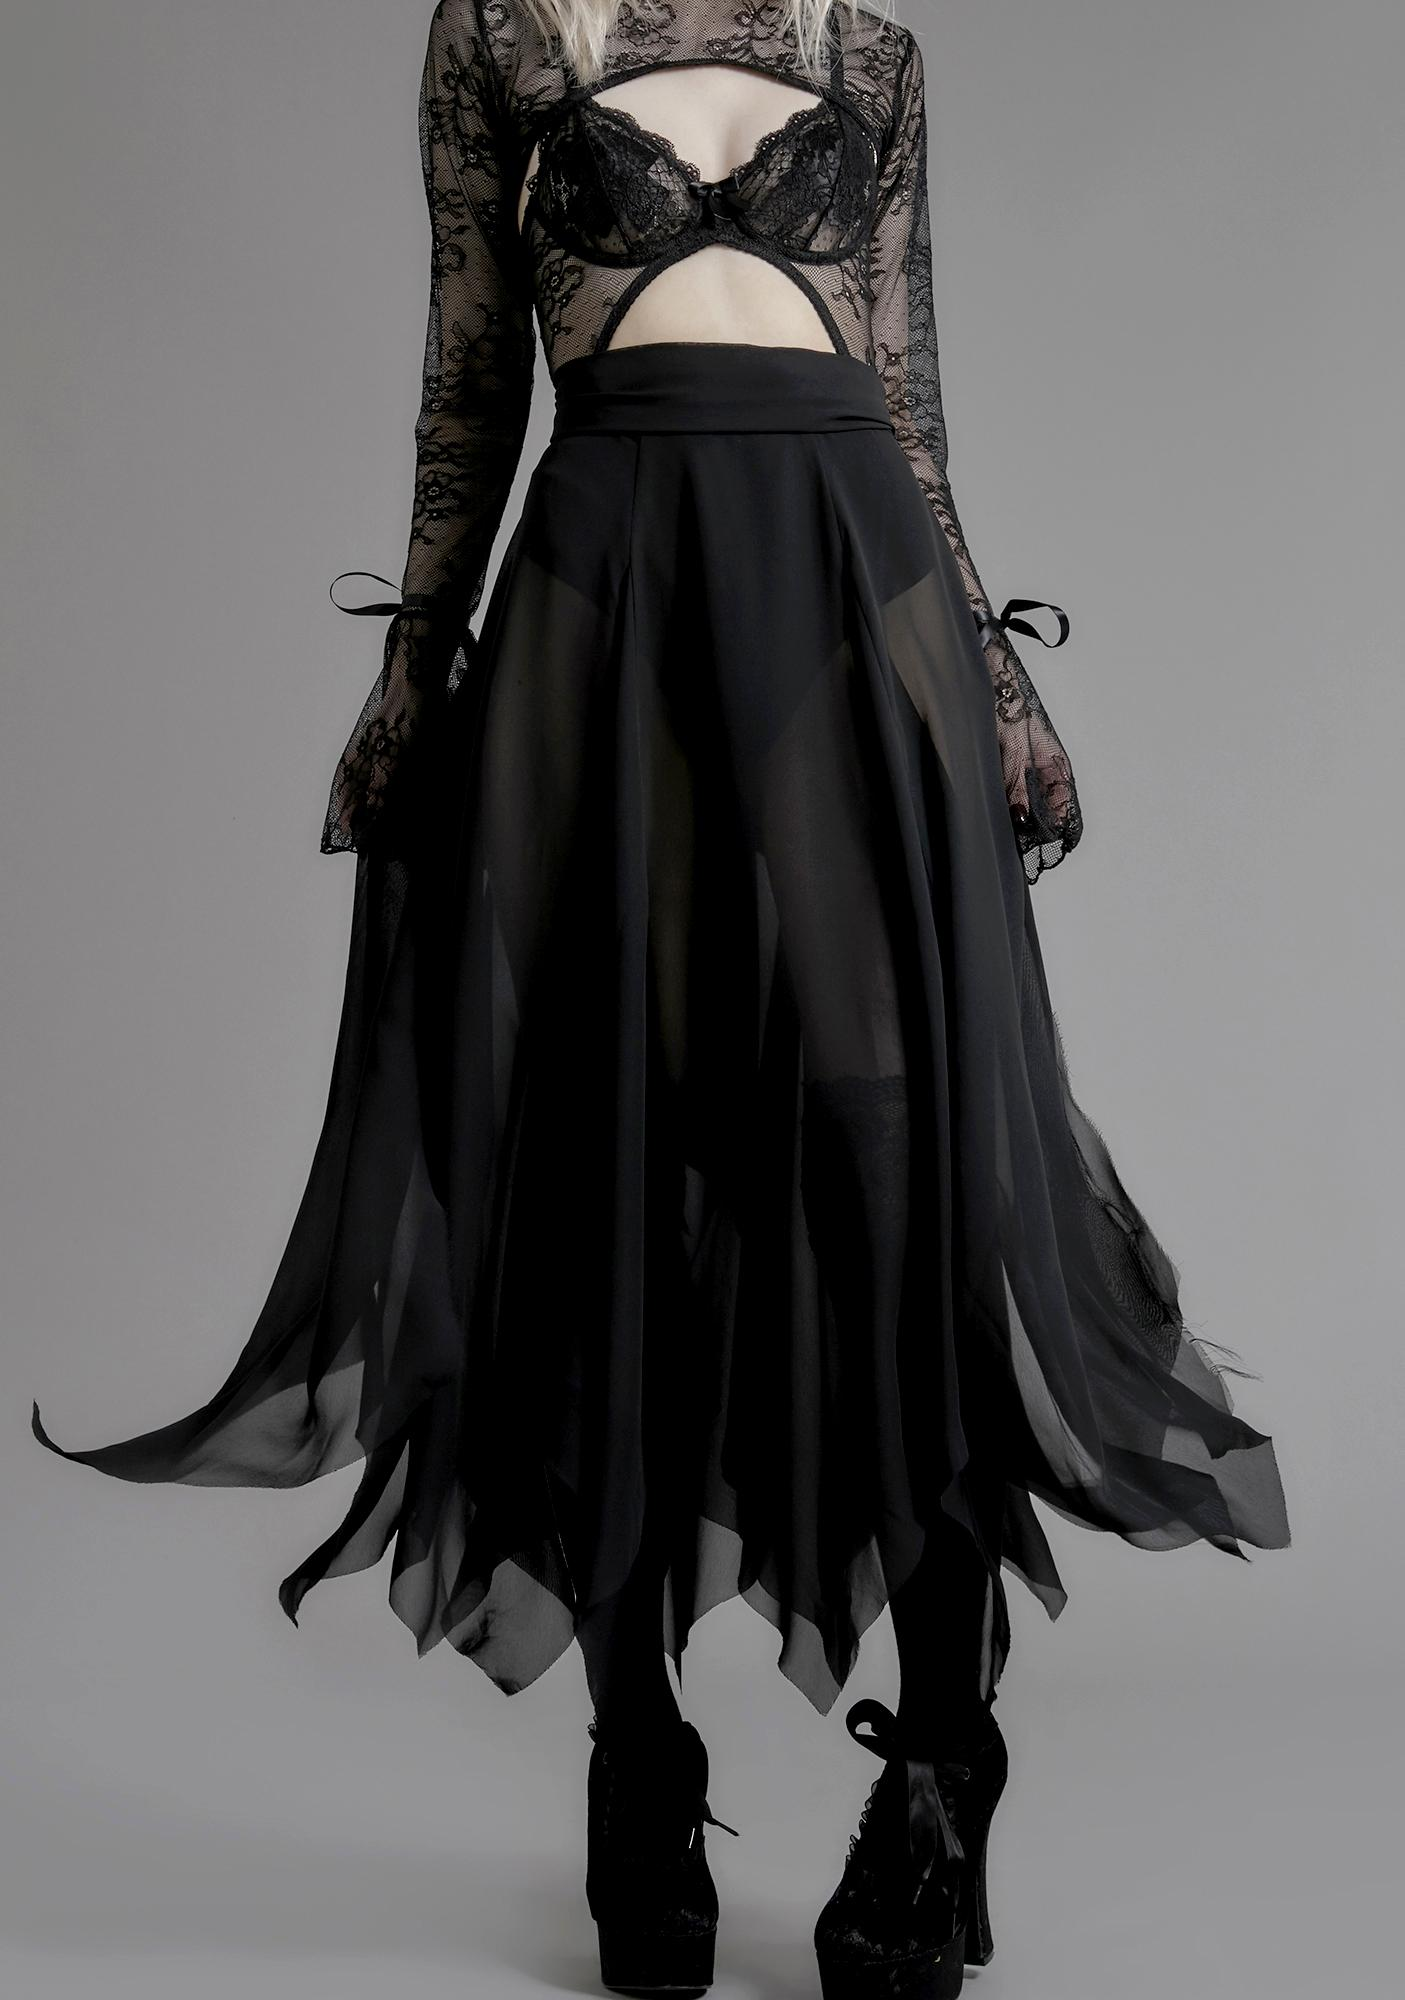 Widow Brooding Shadows Chiffon Skirt